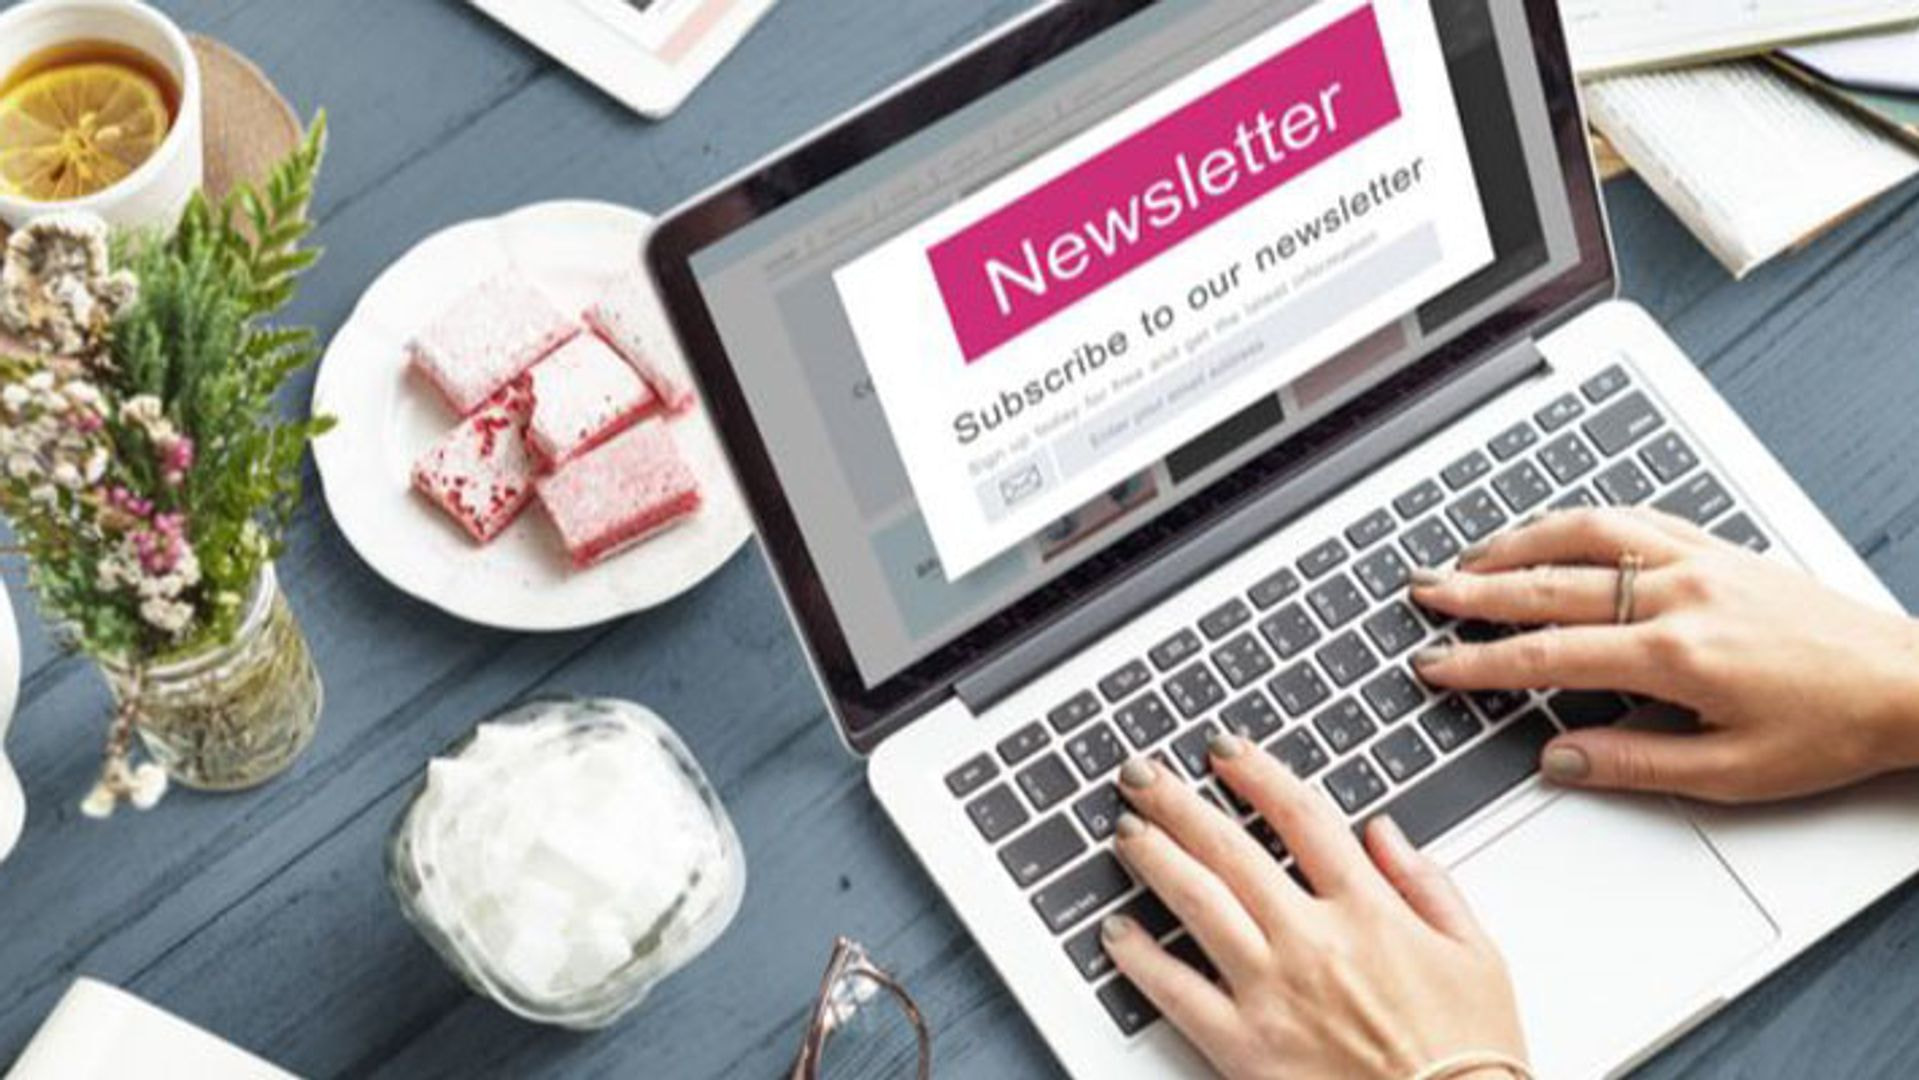 Best Marketing Practices - How to Prepare a Really Good Newsletter